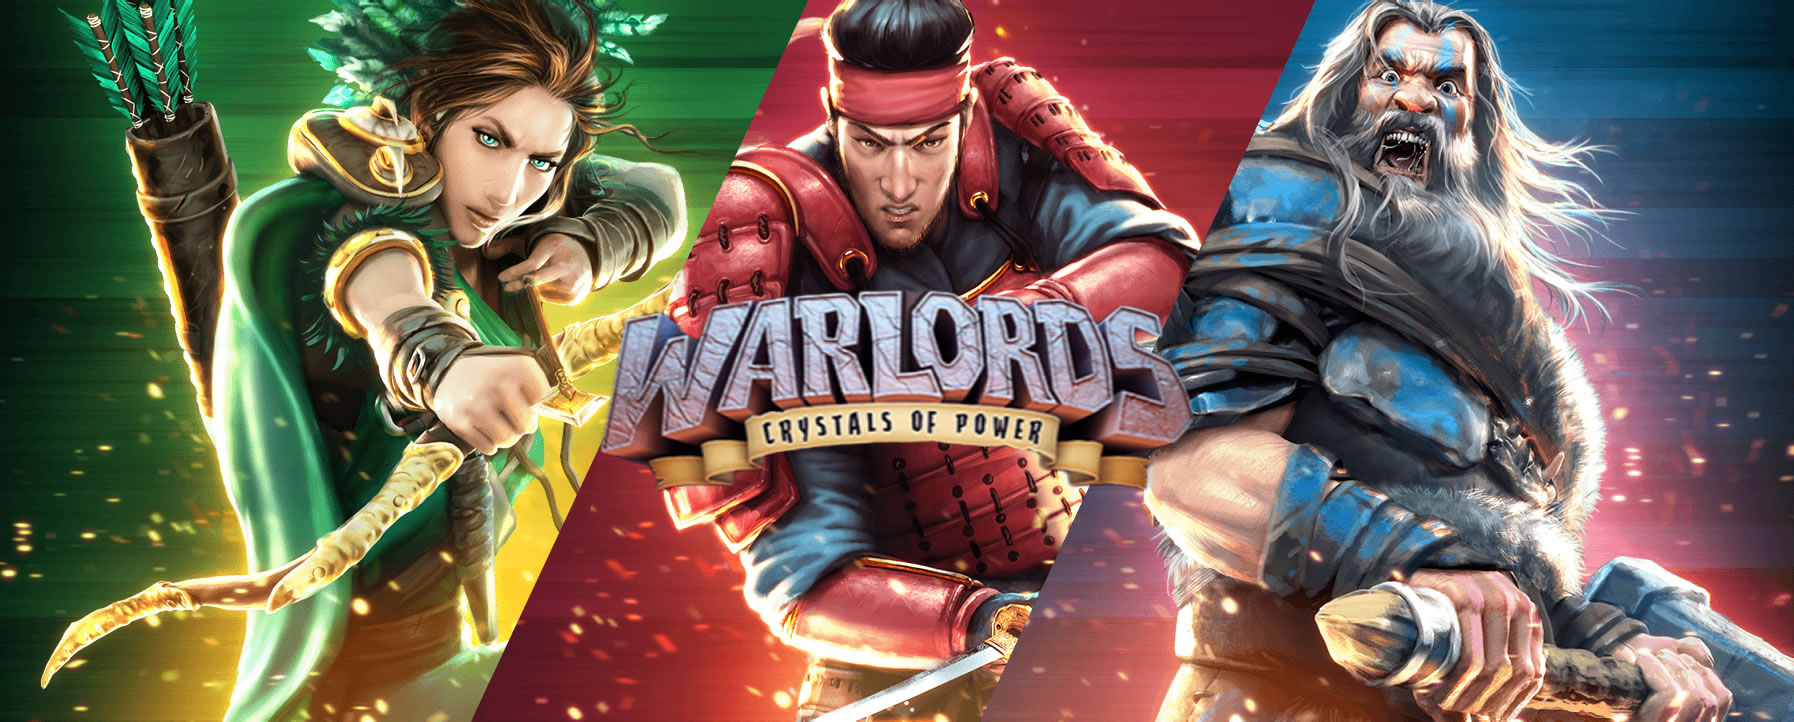 Warlords – Crystals of Power, now live at NetEnt casinos